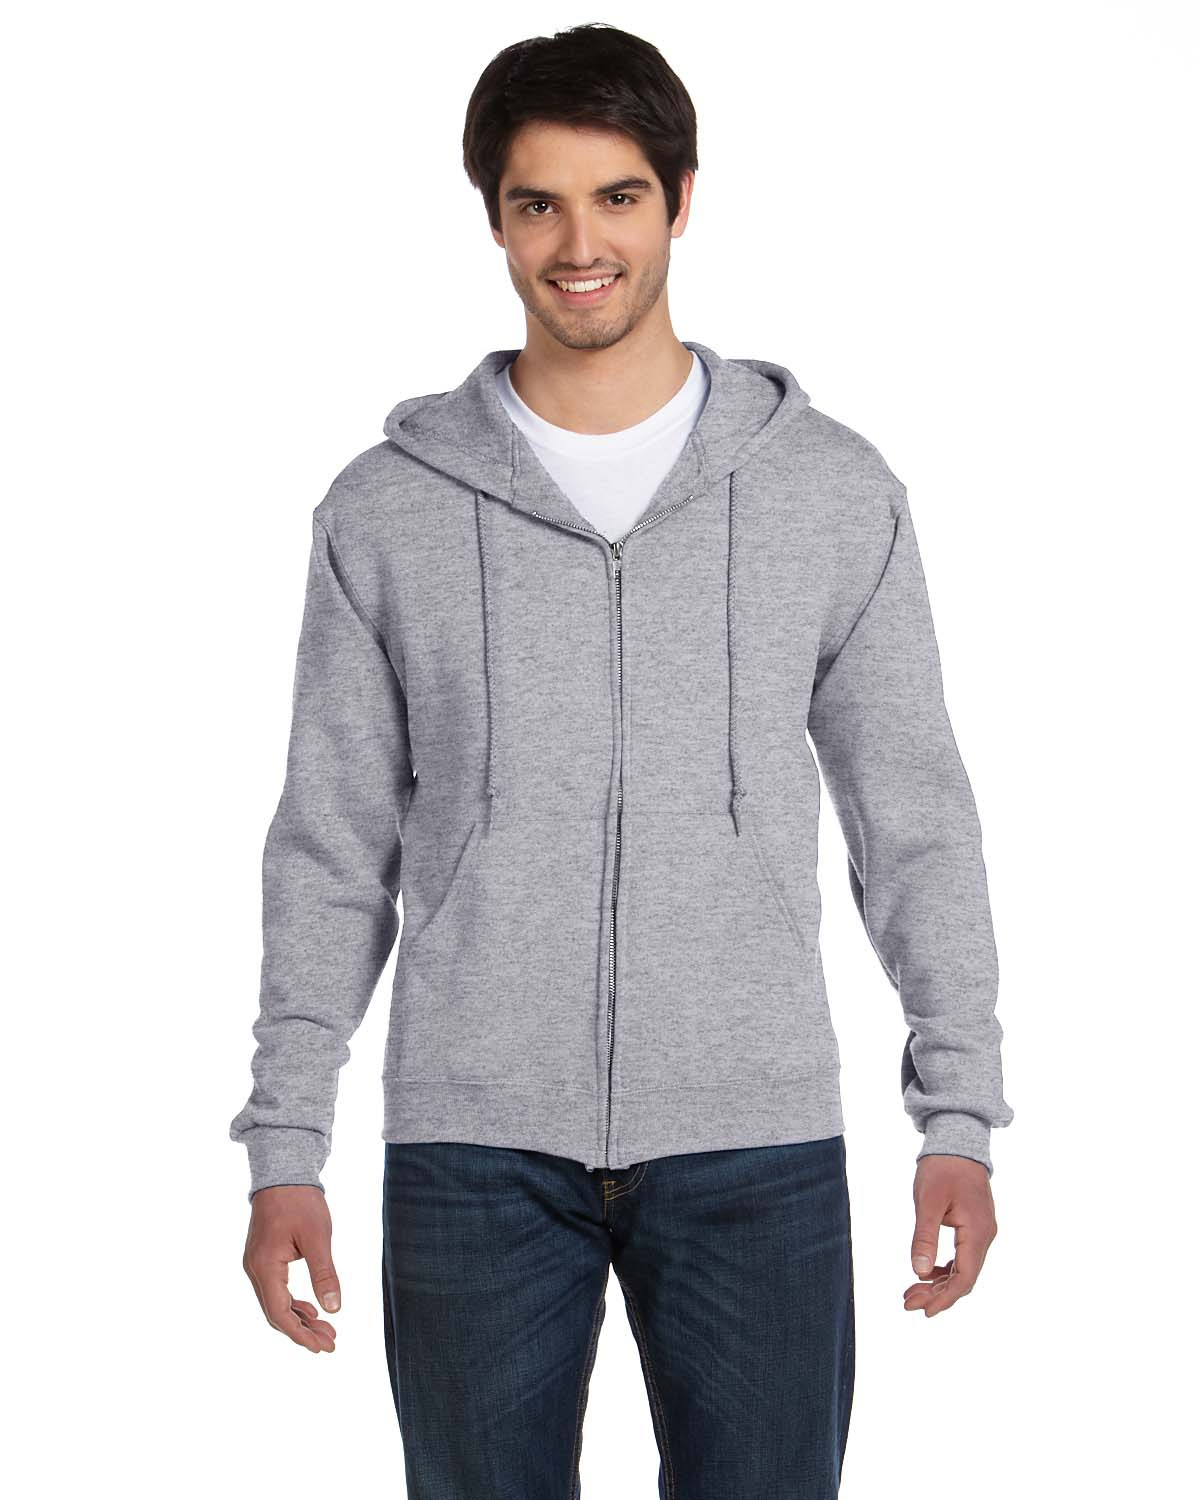 Fruit of the Loom 82230 Men 12 oz. Supercotton 70/30 Full Zip Hood Athletic Heather at GotApparel